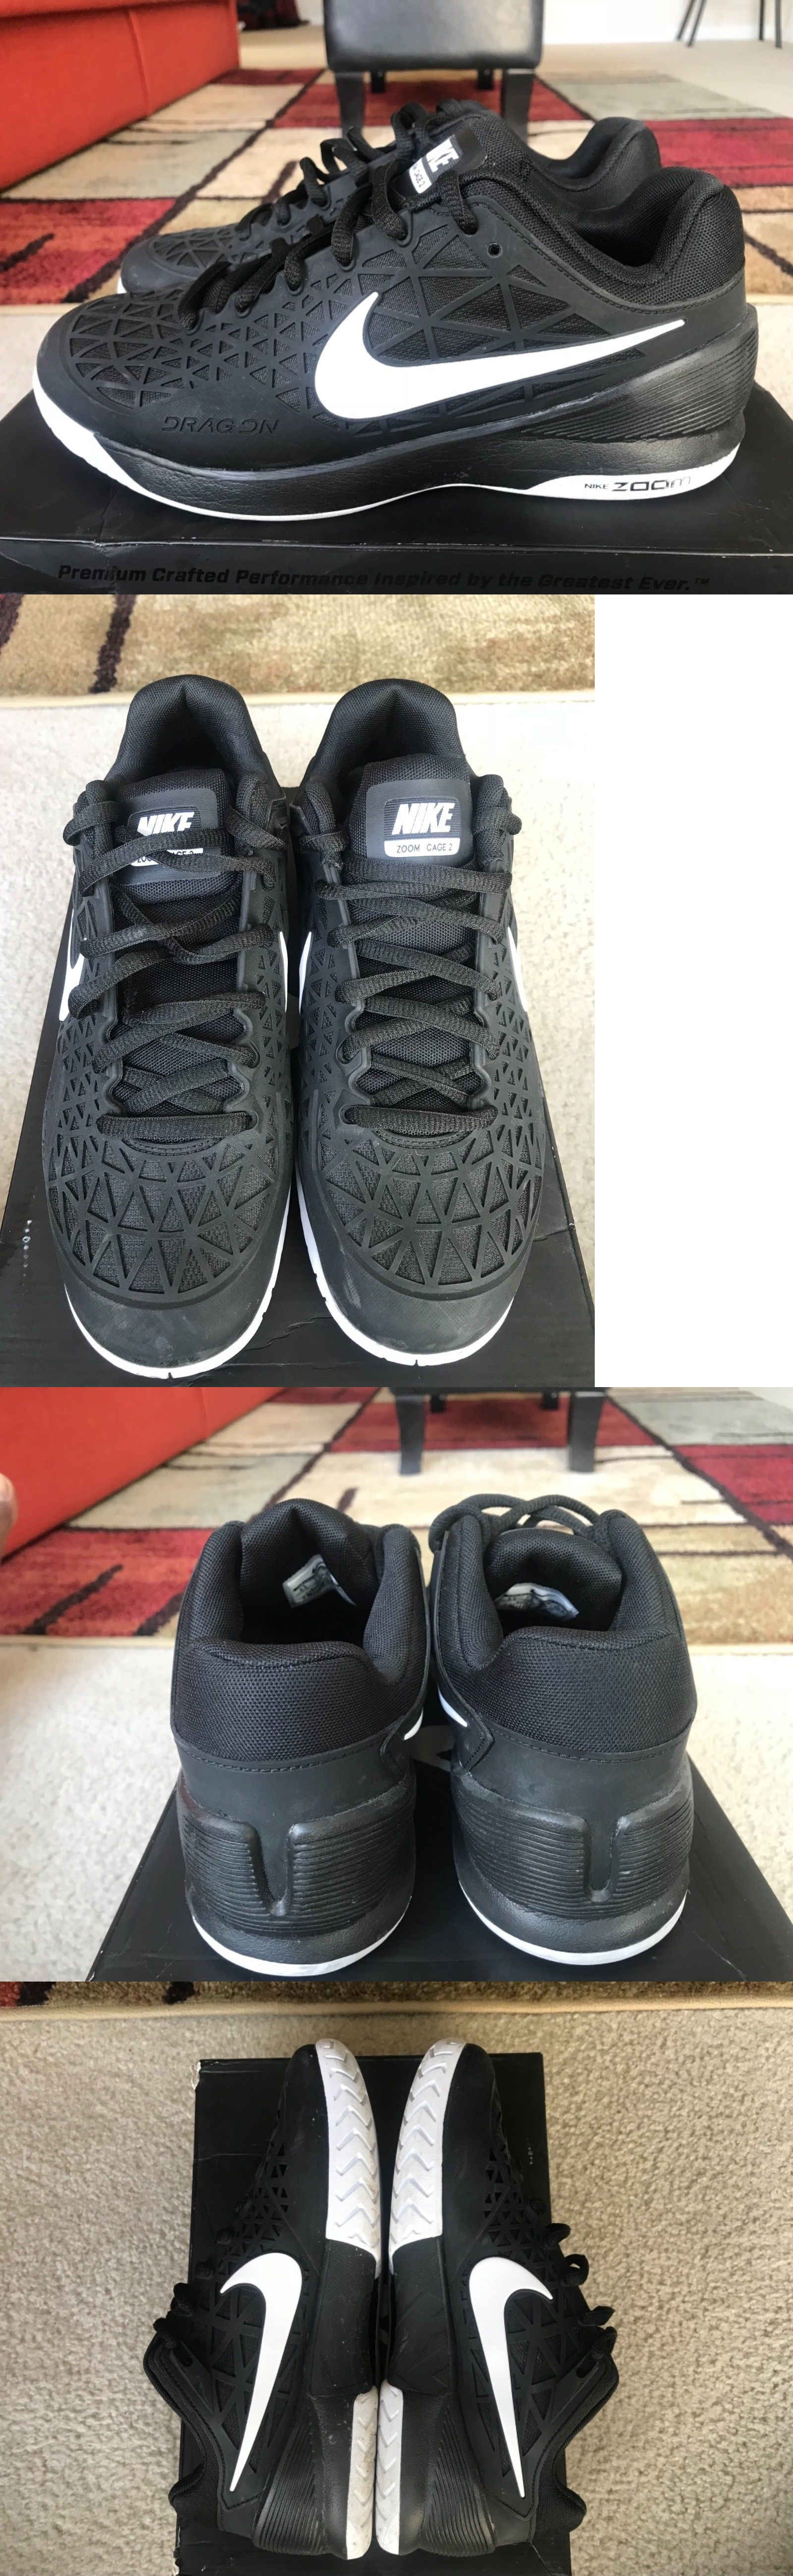 a78b93c4b545 Clothing Shoes and Accessories 62229  Nike Zoom Cage 2 Black Men S Size 8.5  -  BUY IT NOW ONLY   98 on eBay!